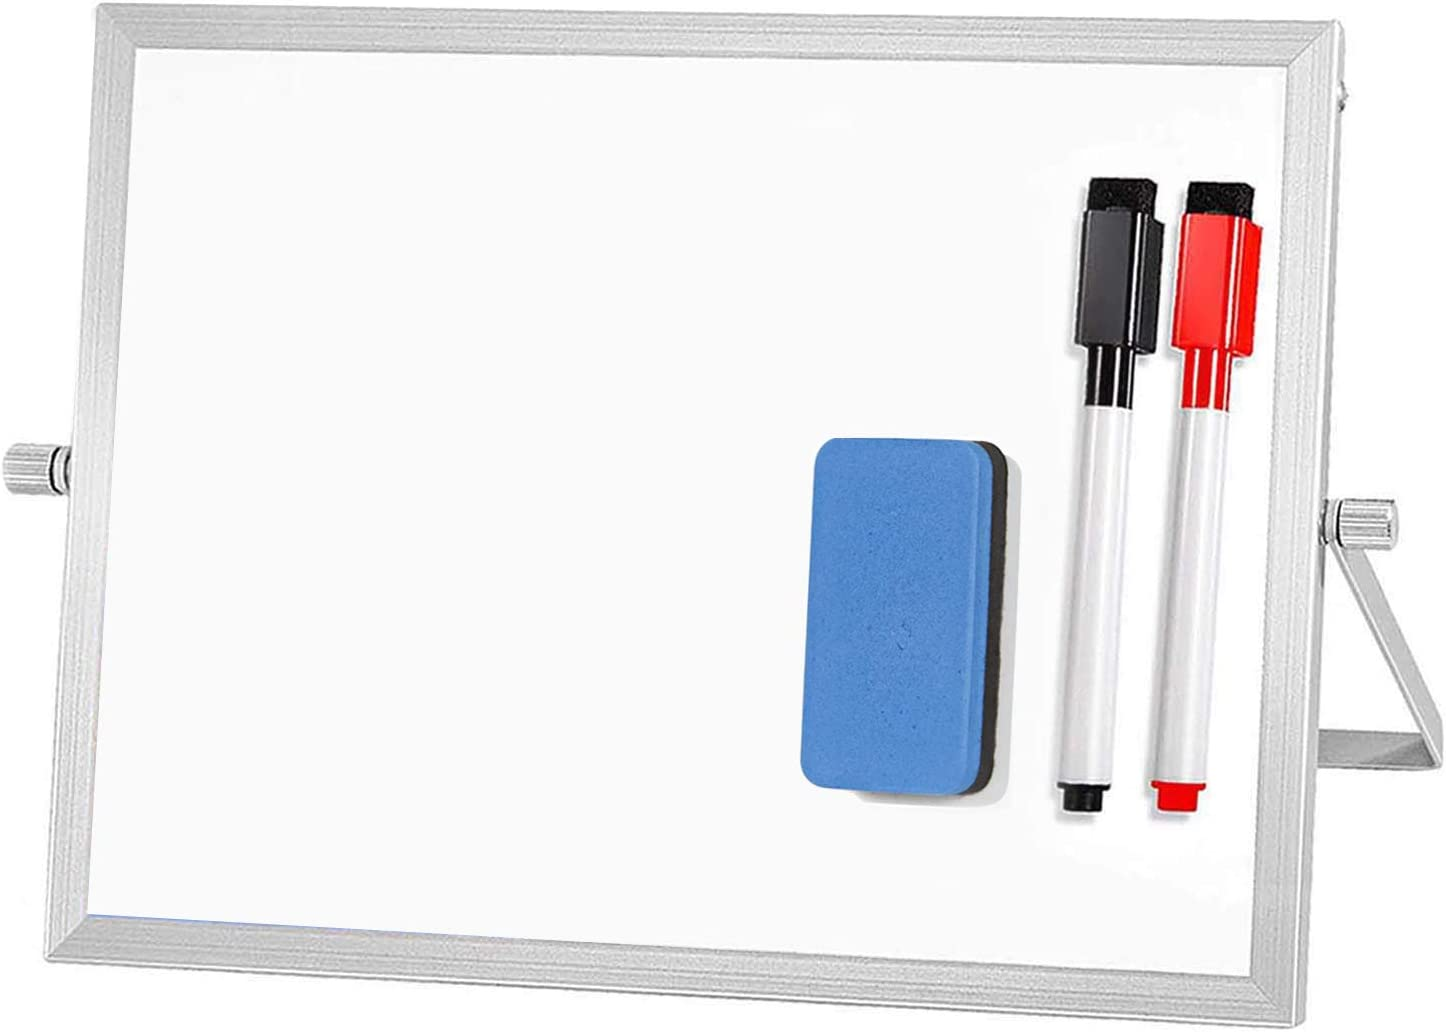 """ARCOBIS Small Desktop Dry Erase Board Portable Magnetic Double Sided Whiteboard Easel for Kids to Do White Board for Office, Home, School 12"""" X 8"""""""